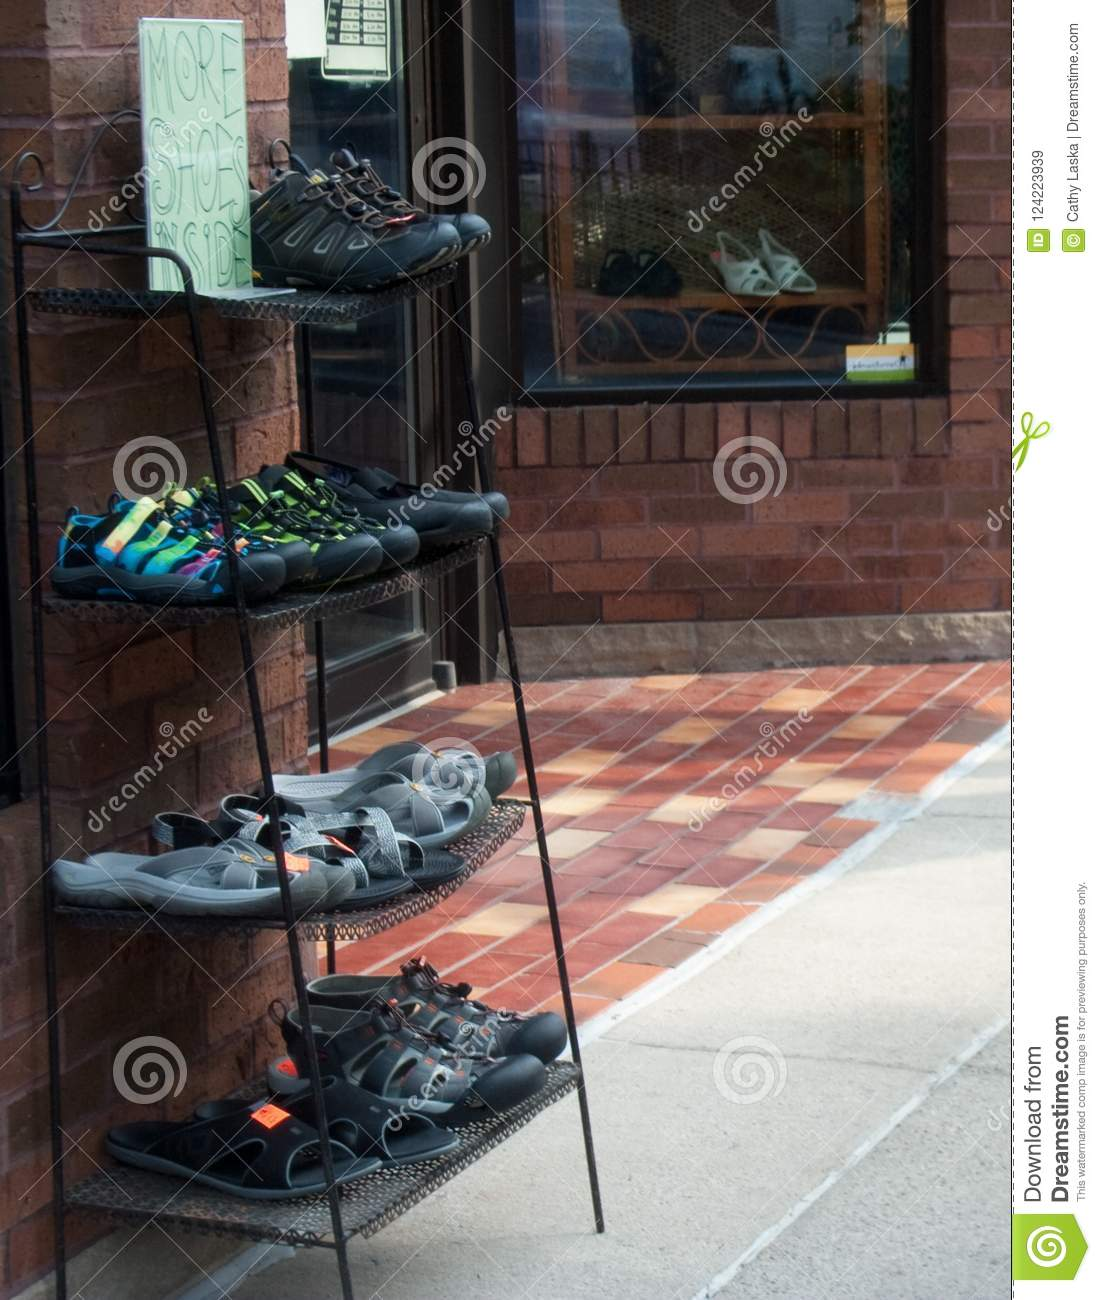 2e97c692d14 Rack of men and women shoes outside shoe store. Shoes also on rack behind  glass of store window.